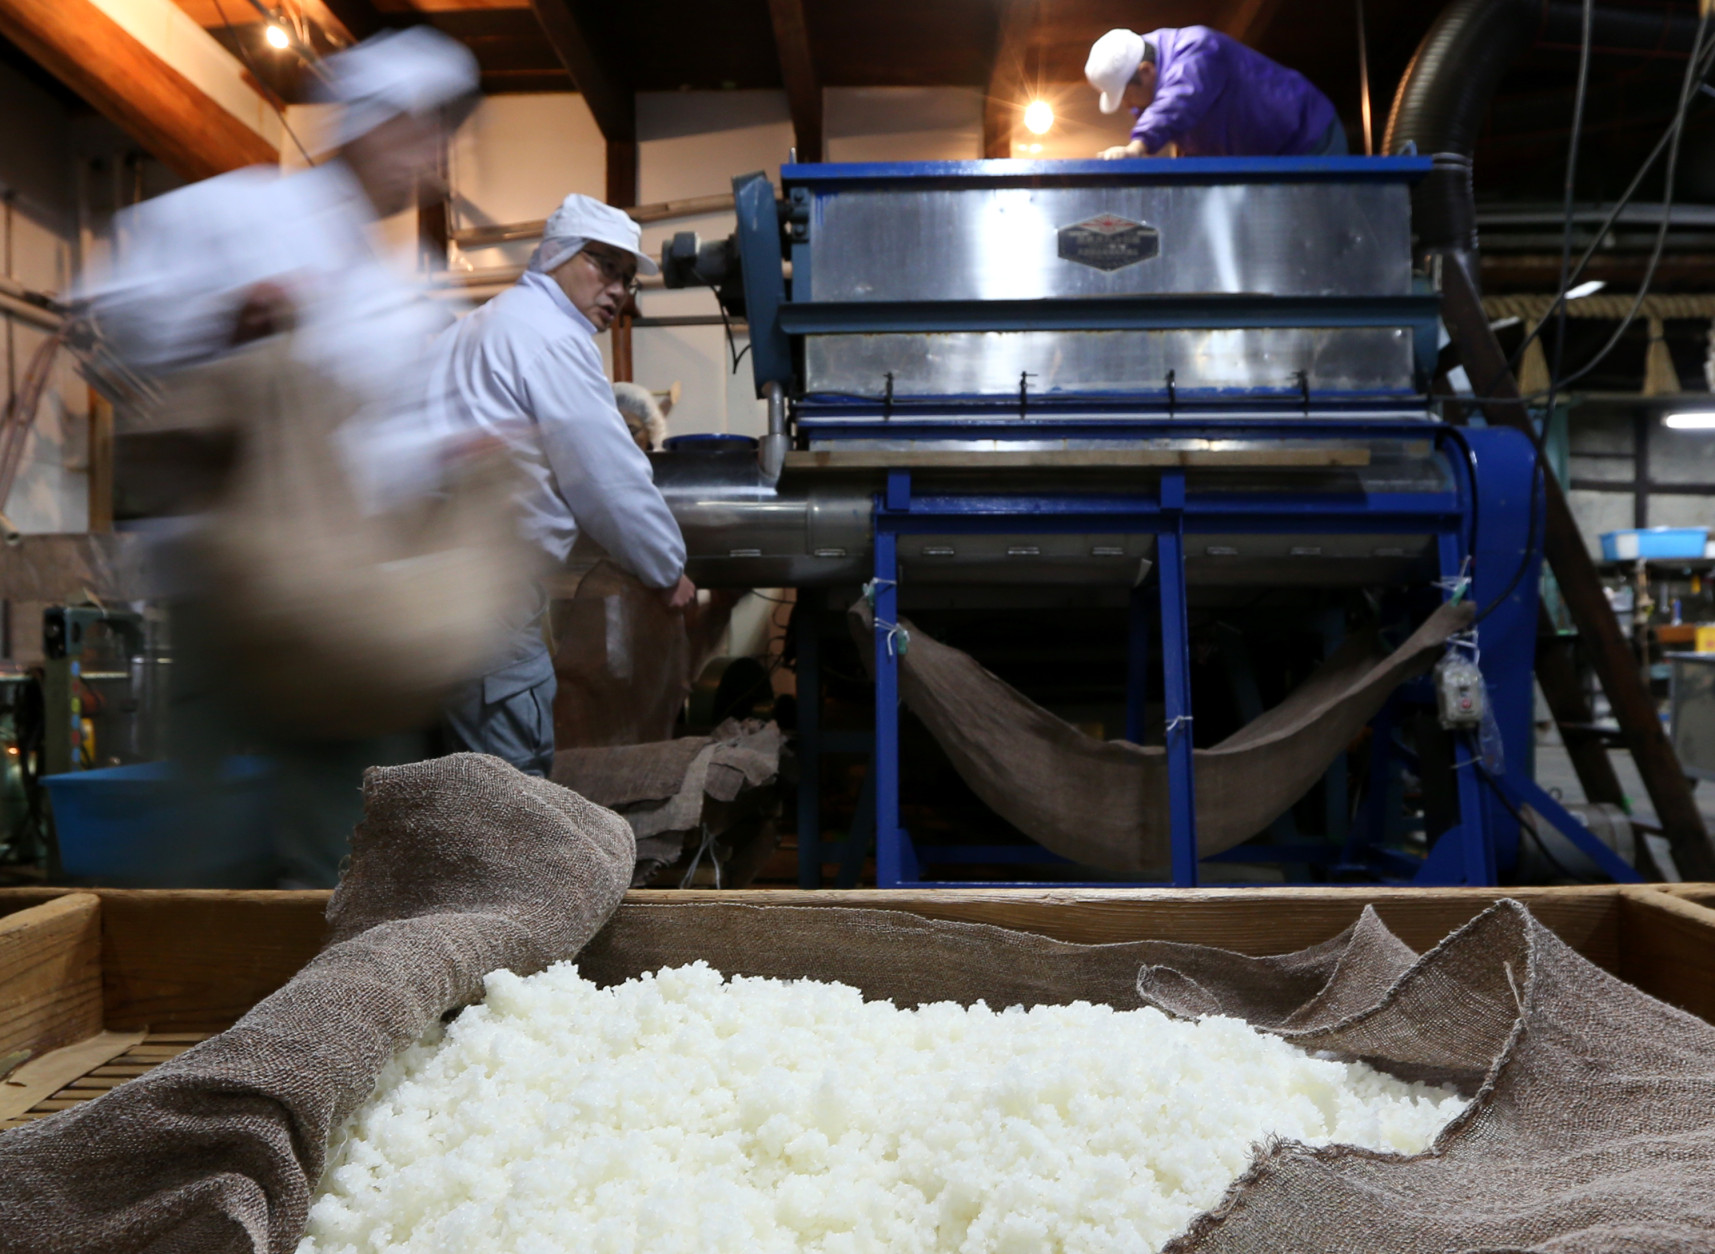 HIMEJI, JAPAN - JANUARY 24:  Japanese sake brewery workers transport steamed rice to put to in sake barrels for fermenting at Tanaka Sake Brewery on January 24, 2014 in Himeji, Japan. Japanese Prime Minister Shinzo Abe targets 60 billion yen by 2020, a fivefold increase in rice-based product exports including sake.  (Photo by Buddhika Weerasinghe/Getty Images).  (Photo by Buddhika Weerasinghe/Getty Images)